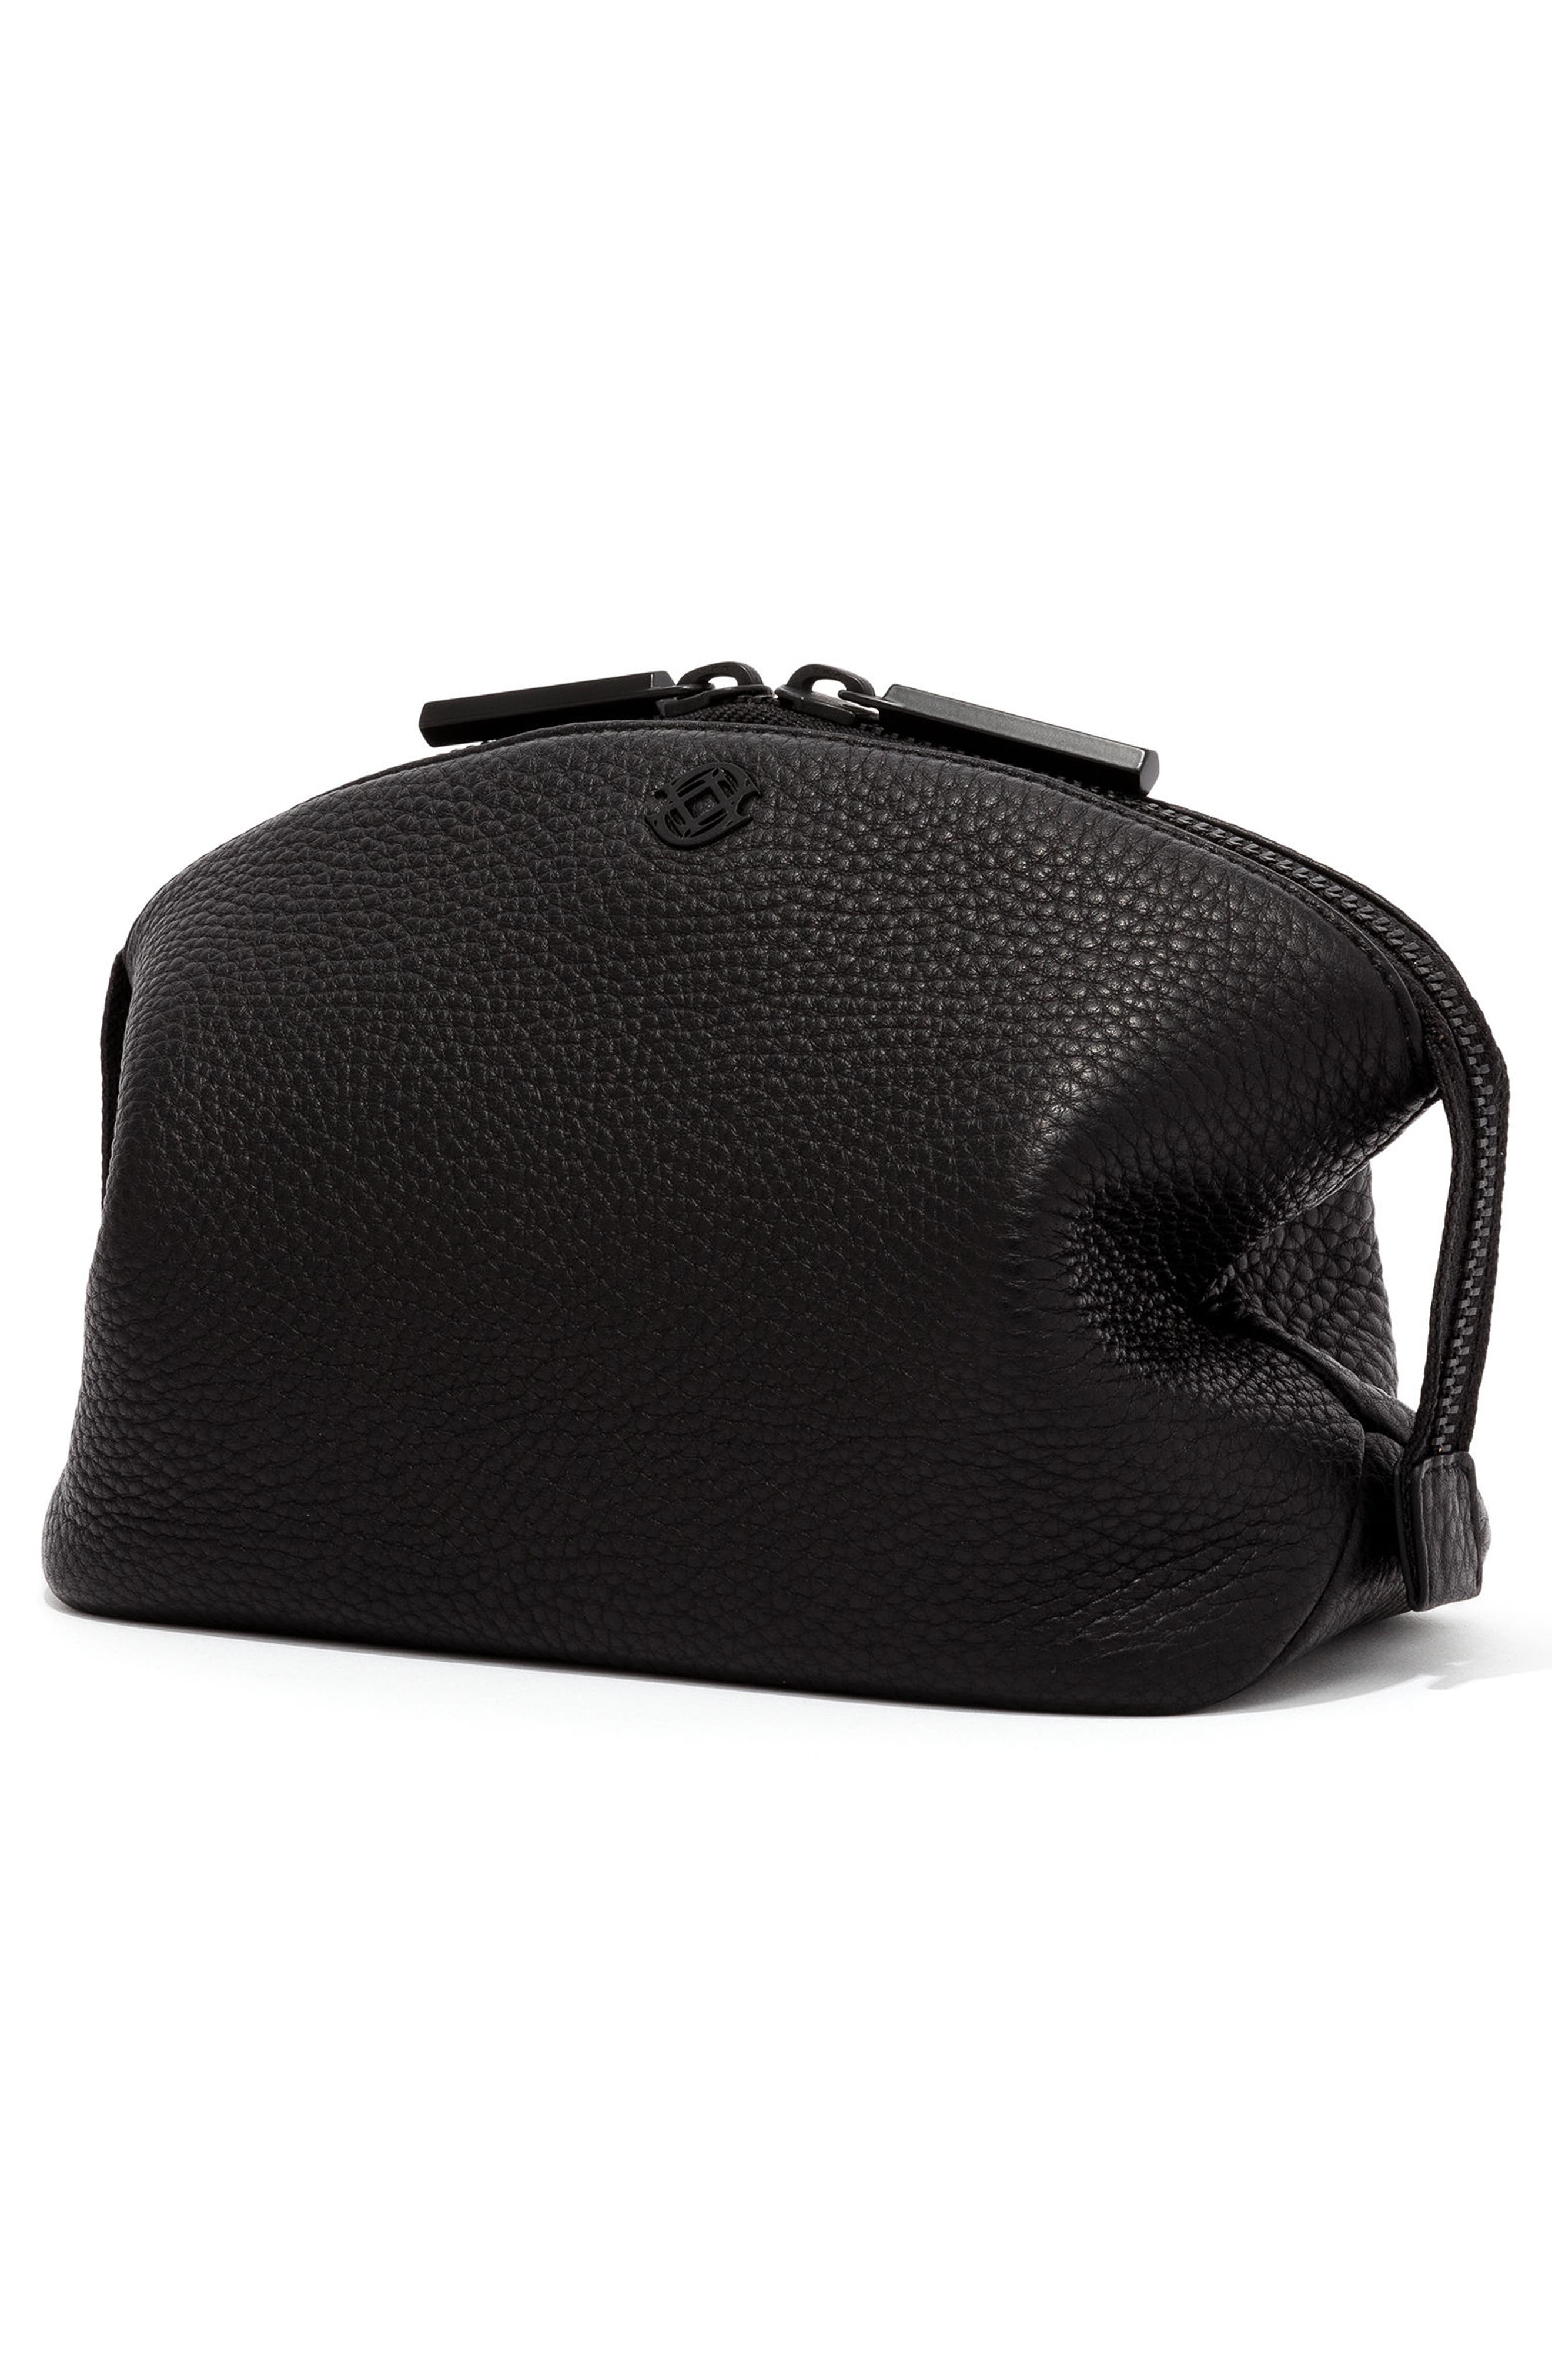 Large Lola Leather Cosmetics Pouch,                             Alternate thumbnail 4, color,                             Onyx